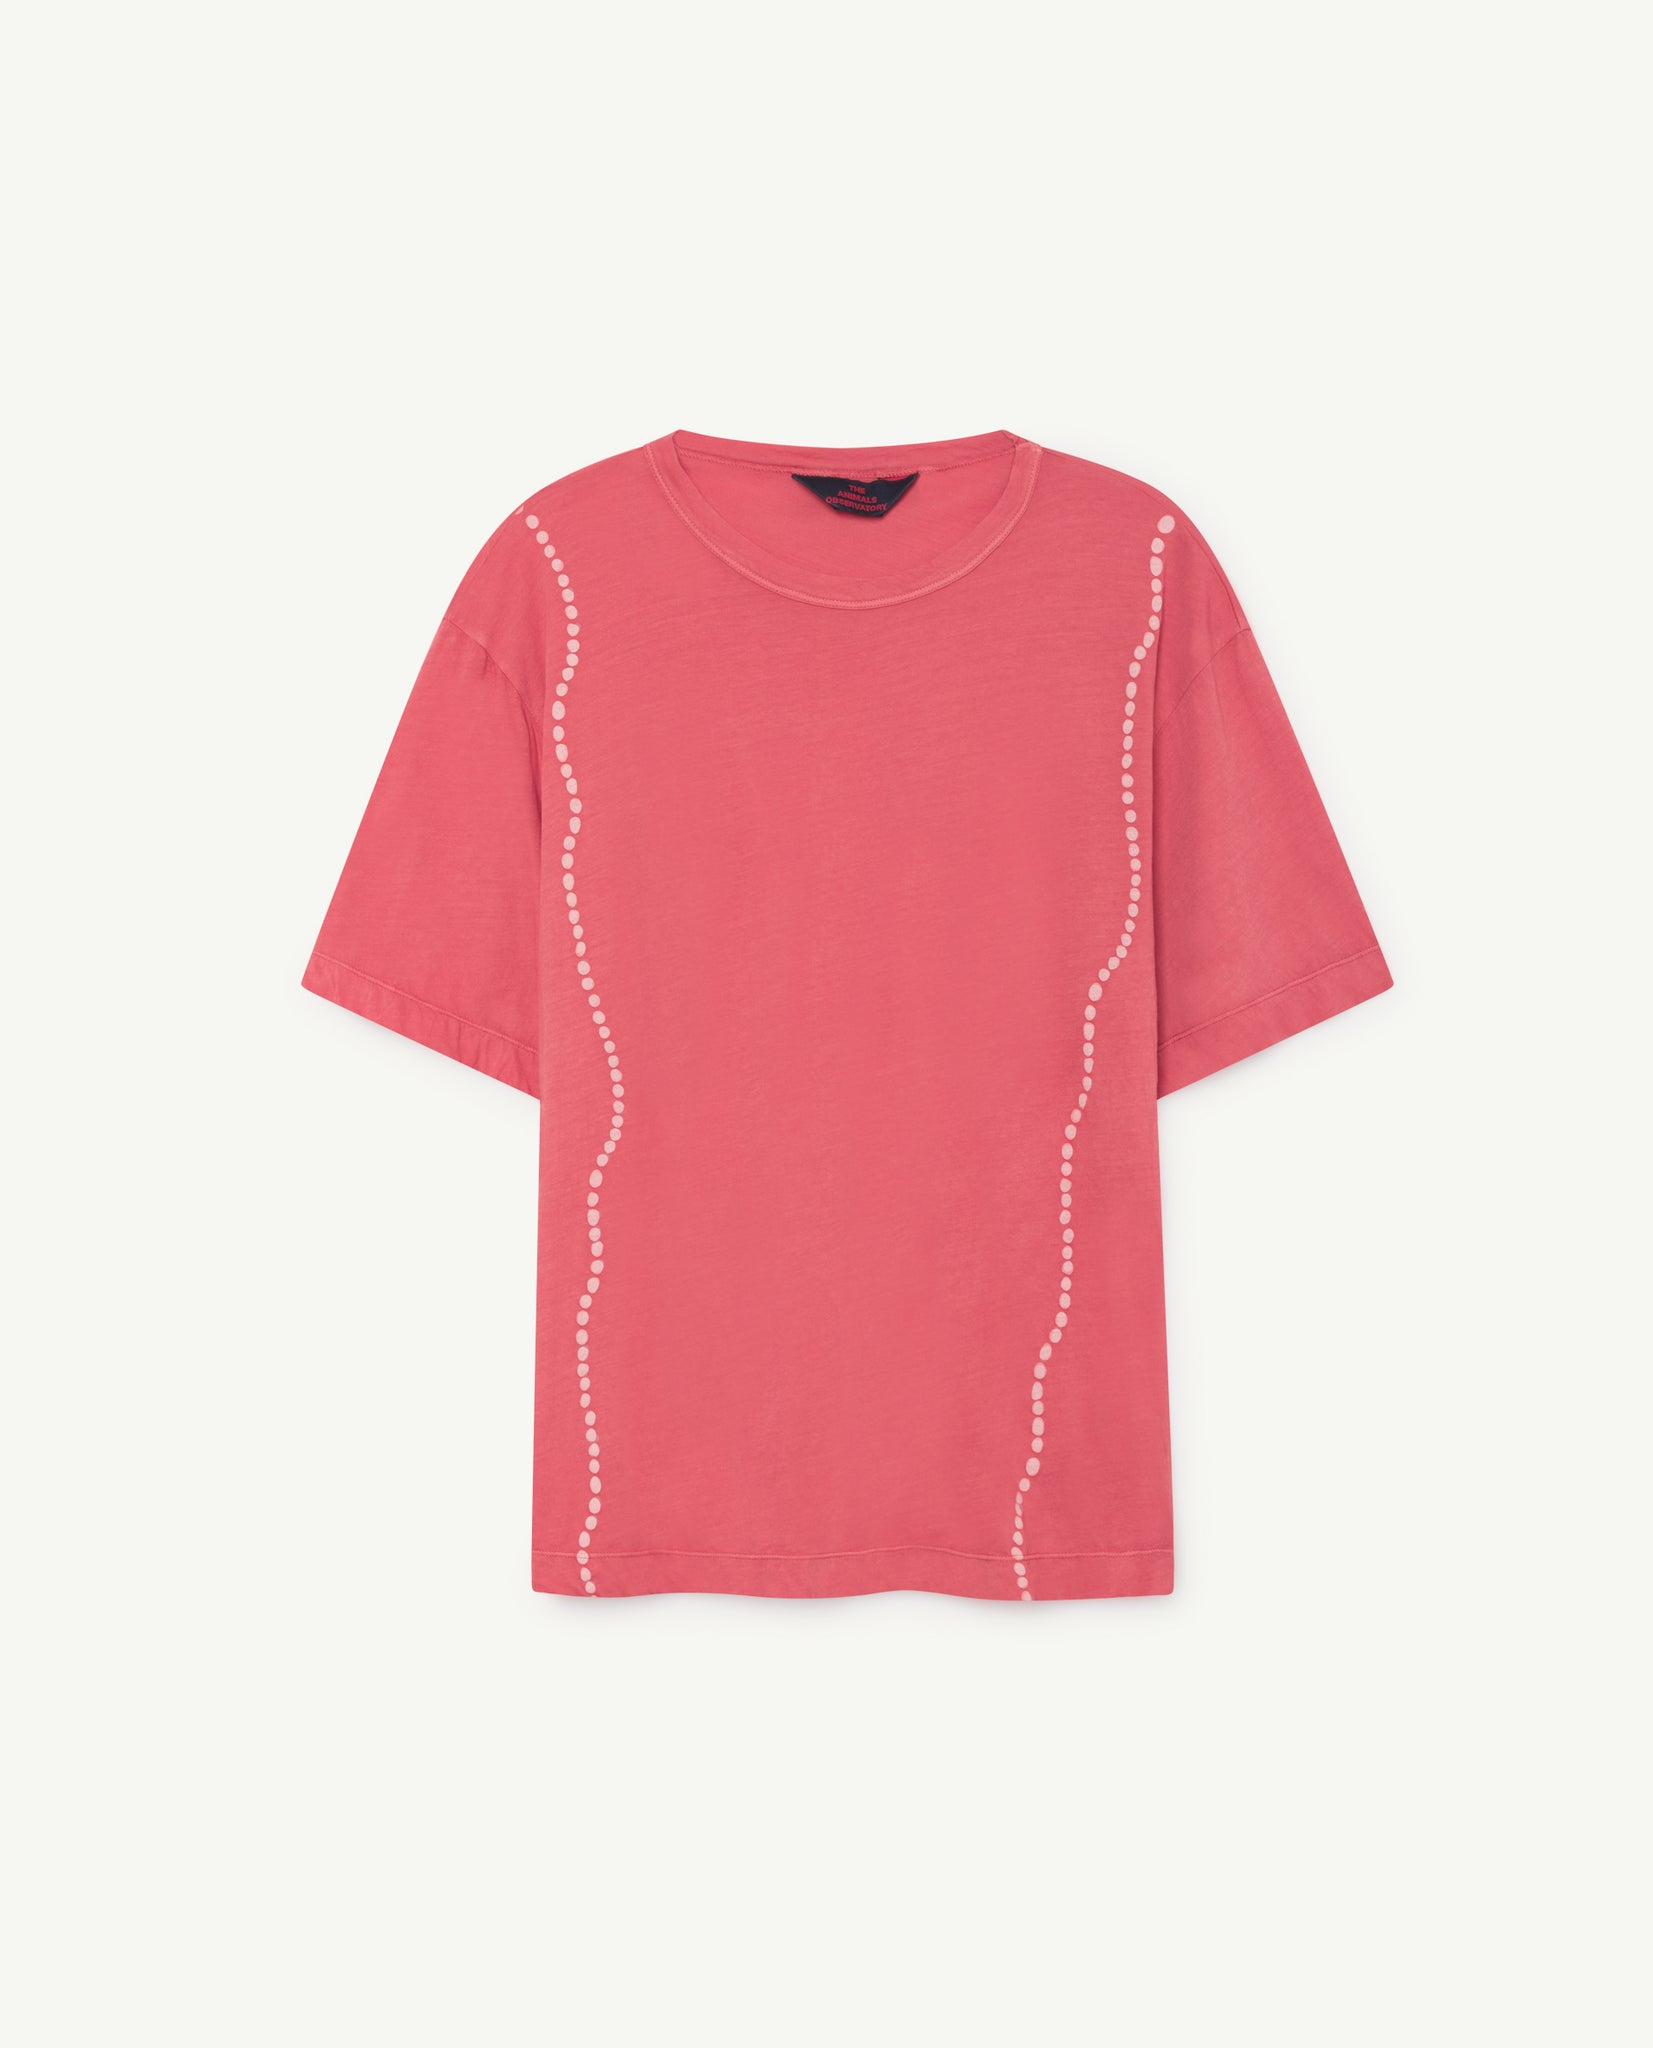 ROOSTER OVERSIZE KIDS T-SHIRT // RED SHELLS